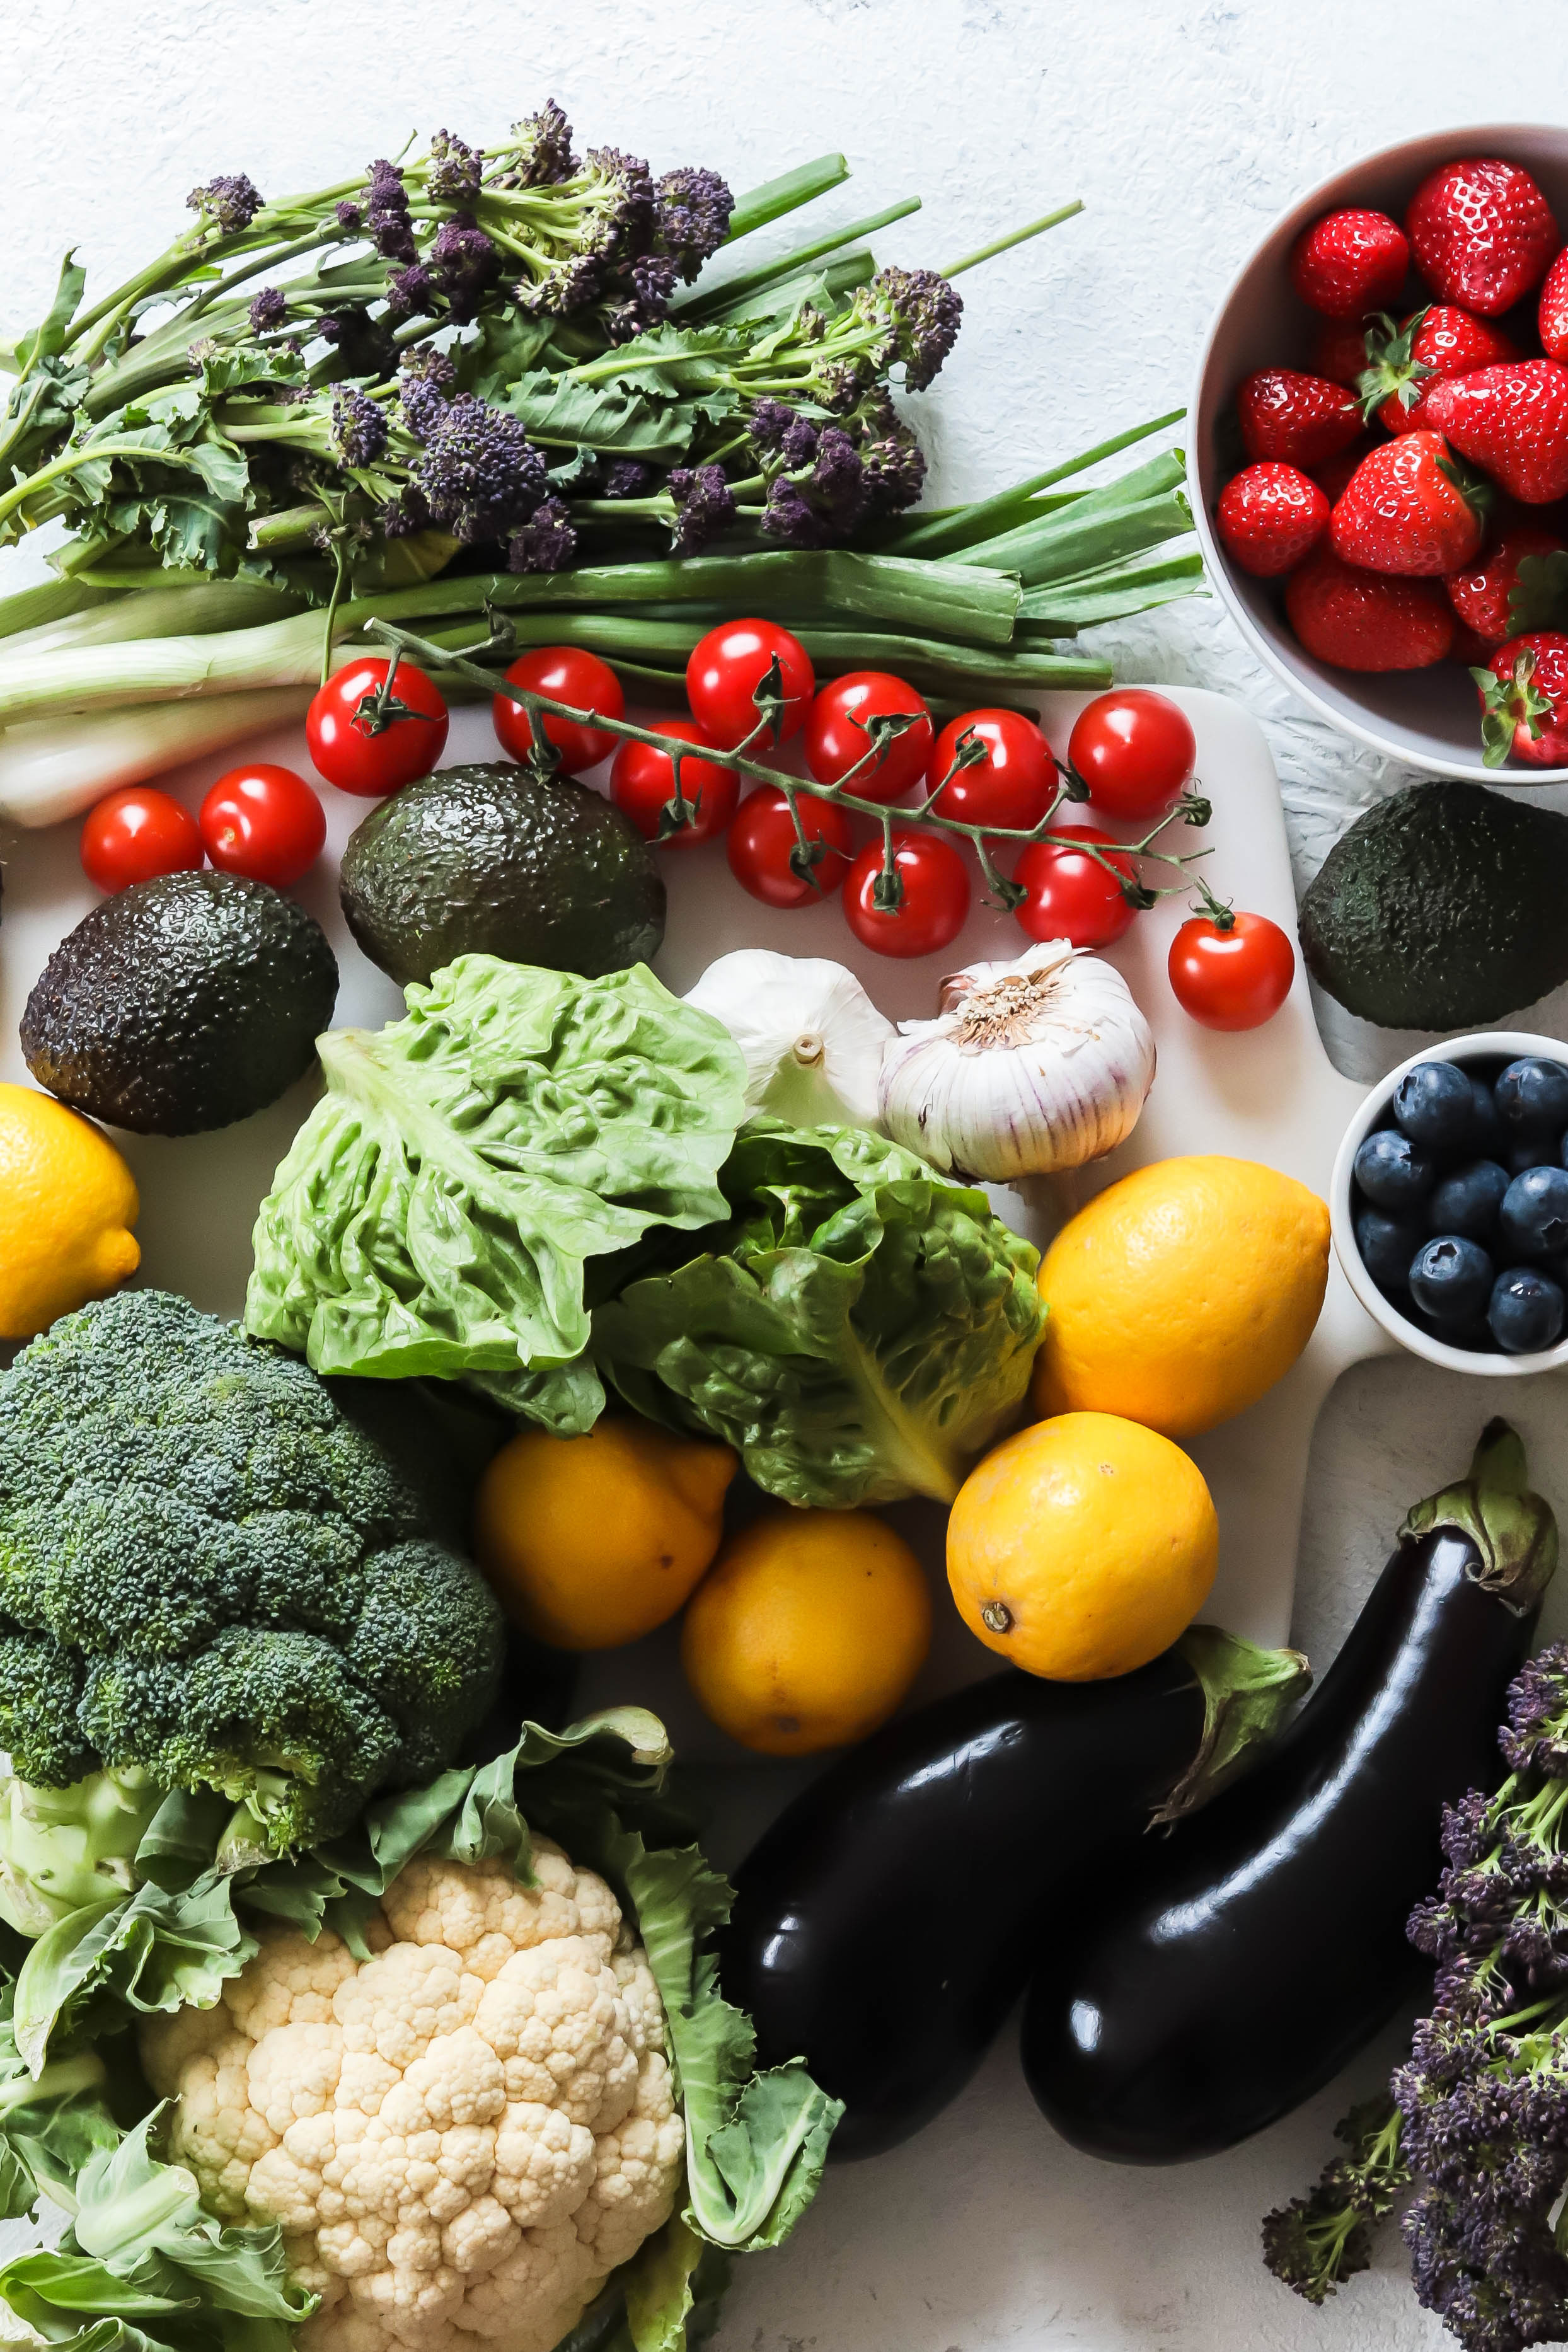 An array of vegetables and fruits